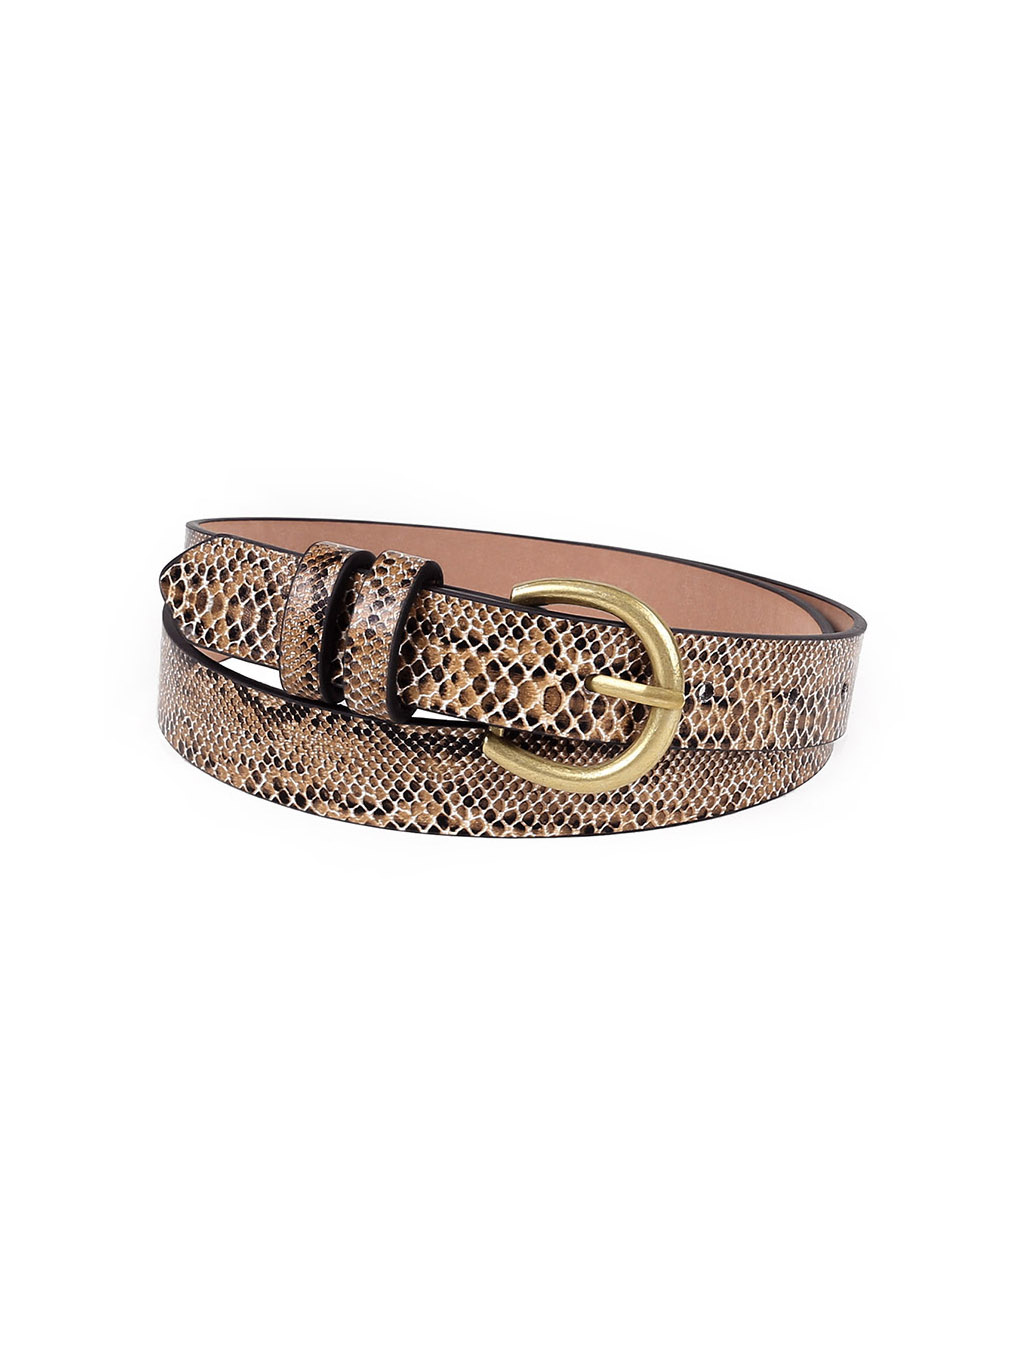 Stylish Serpentine Metal Buckle Women Belt